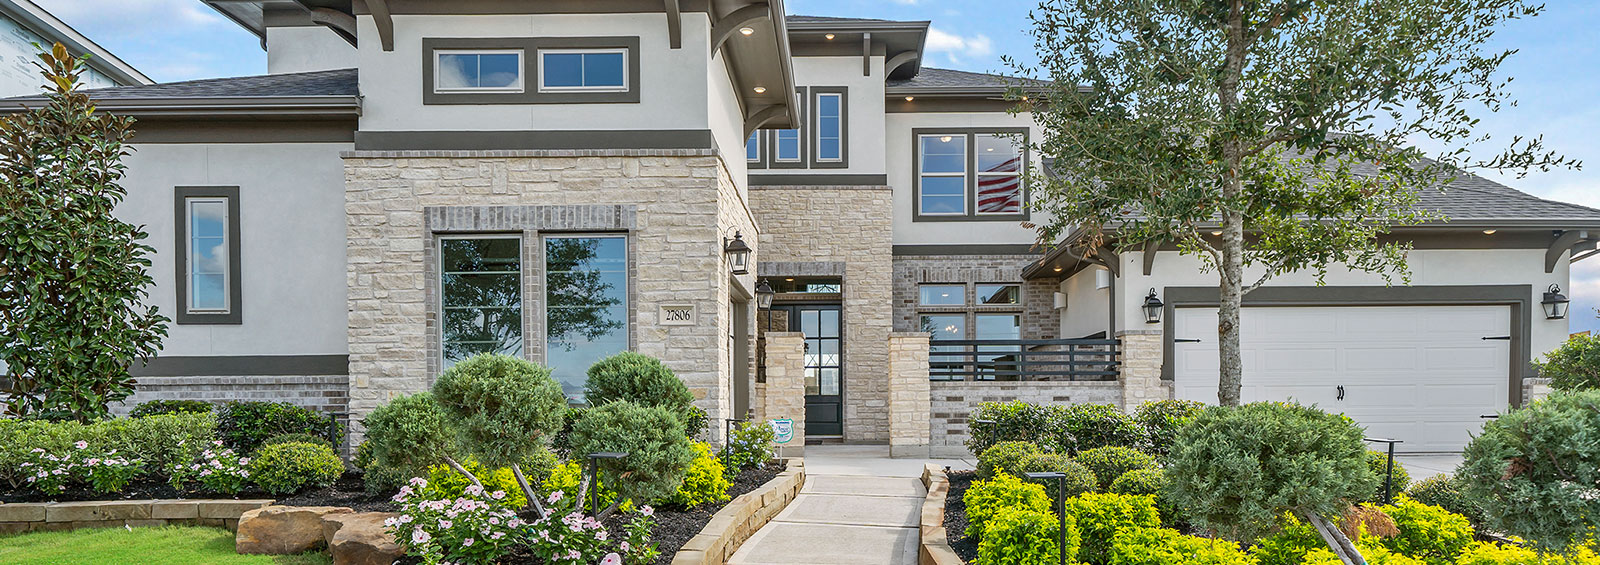 Cornerstone Mortgage Providers, LLC. - Kristy Cormier NMLS# 316461 reviews | Mortgage Lenders at 11330 Clay Road - Houston TX